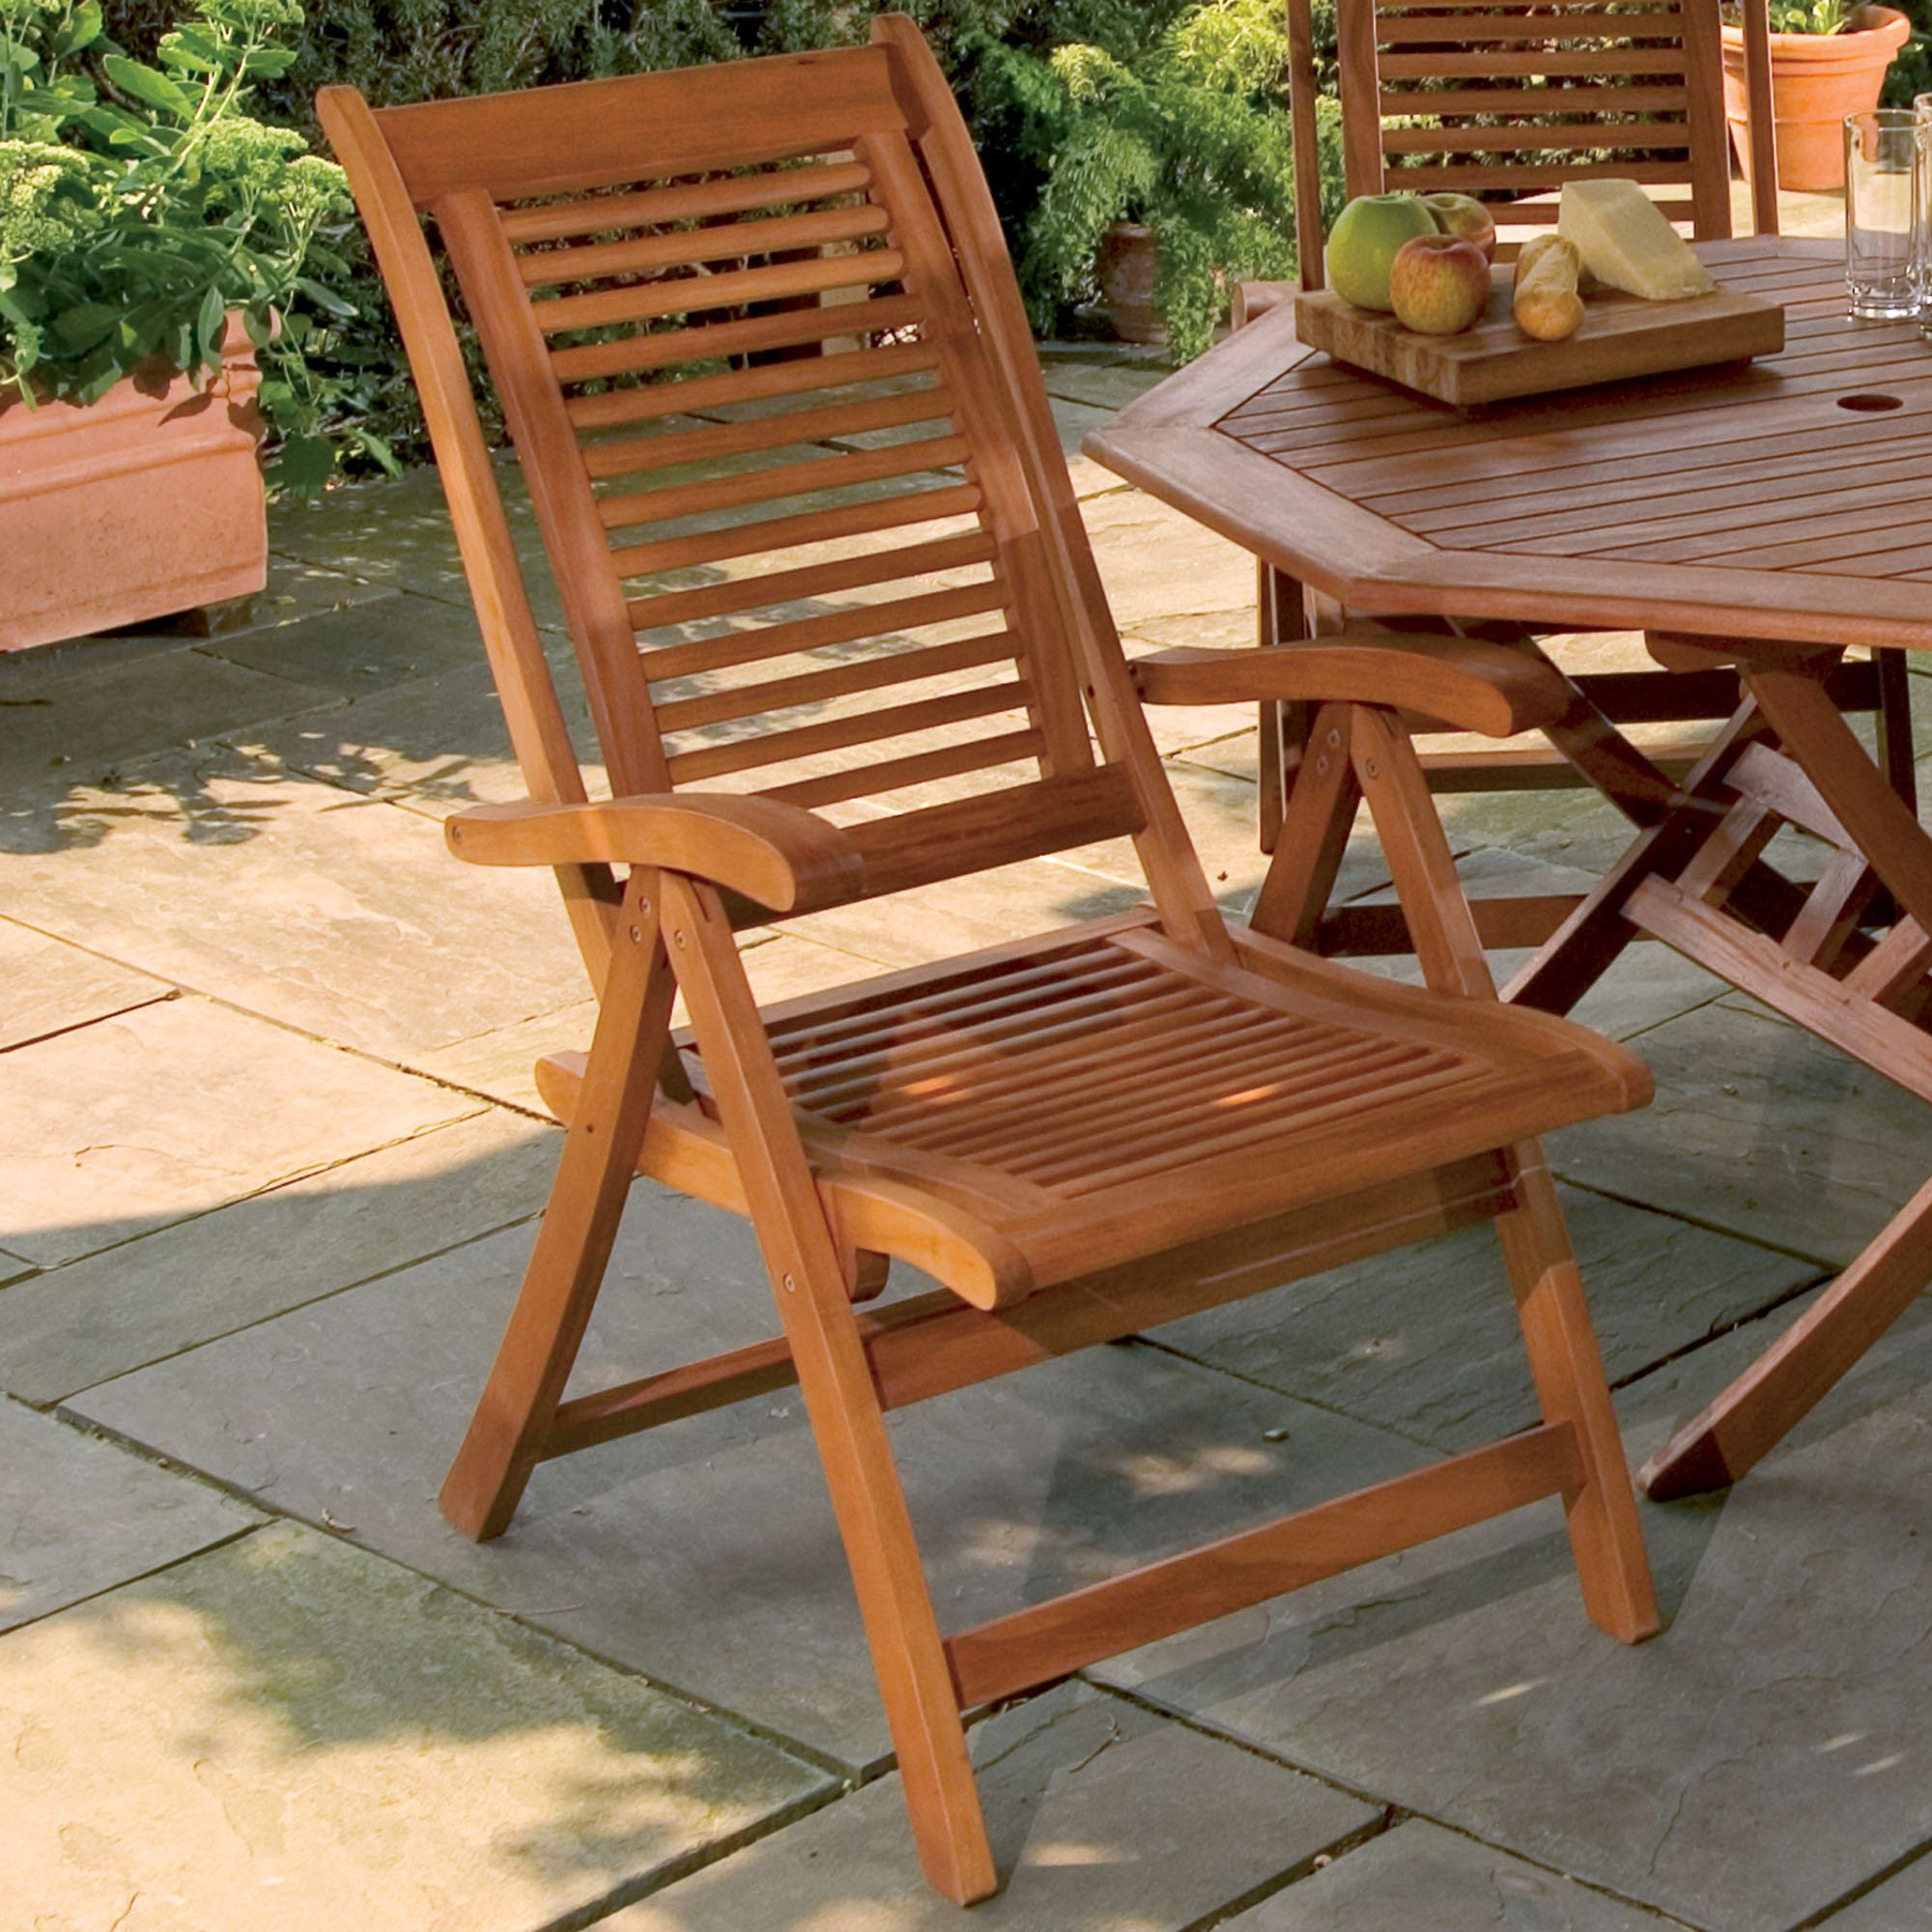 wooden cushions room furniture outsmarting patio metal for wood indoor aluminum wicker vs dining with